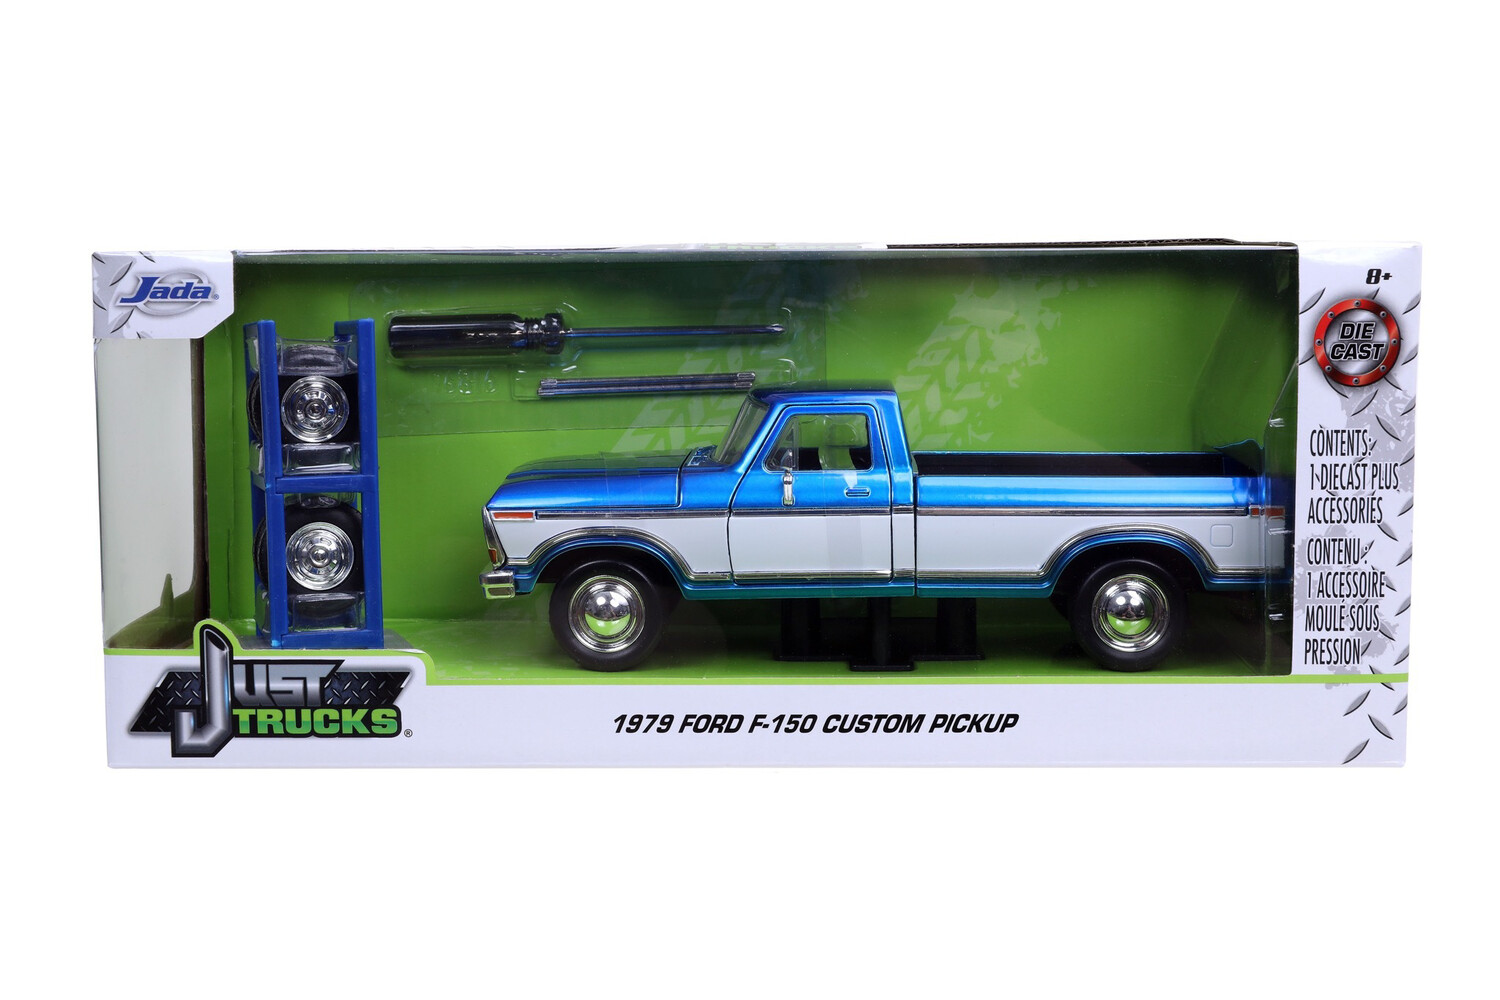 1979 Ford F-150 Custom Pick up